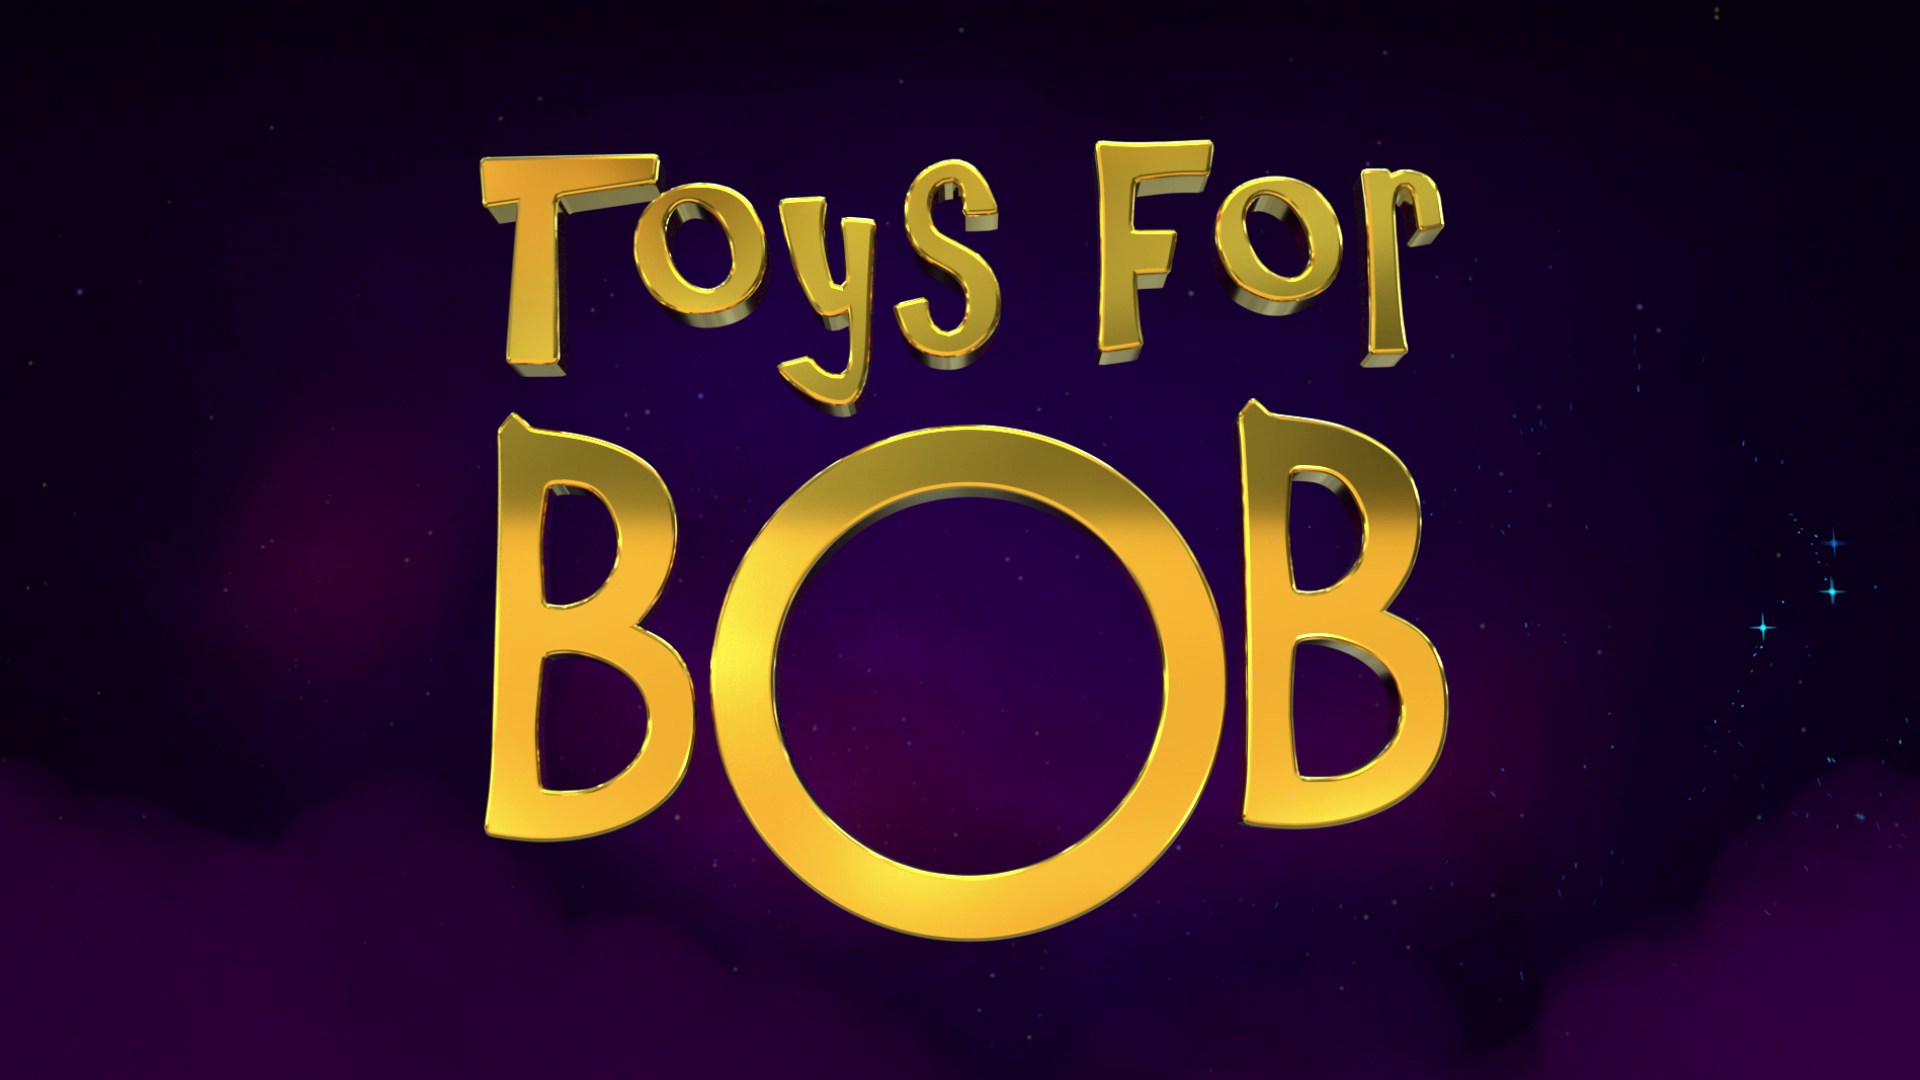 Toys for Bob (2018) [normal gamma]